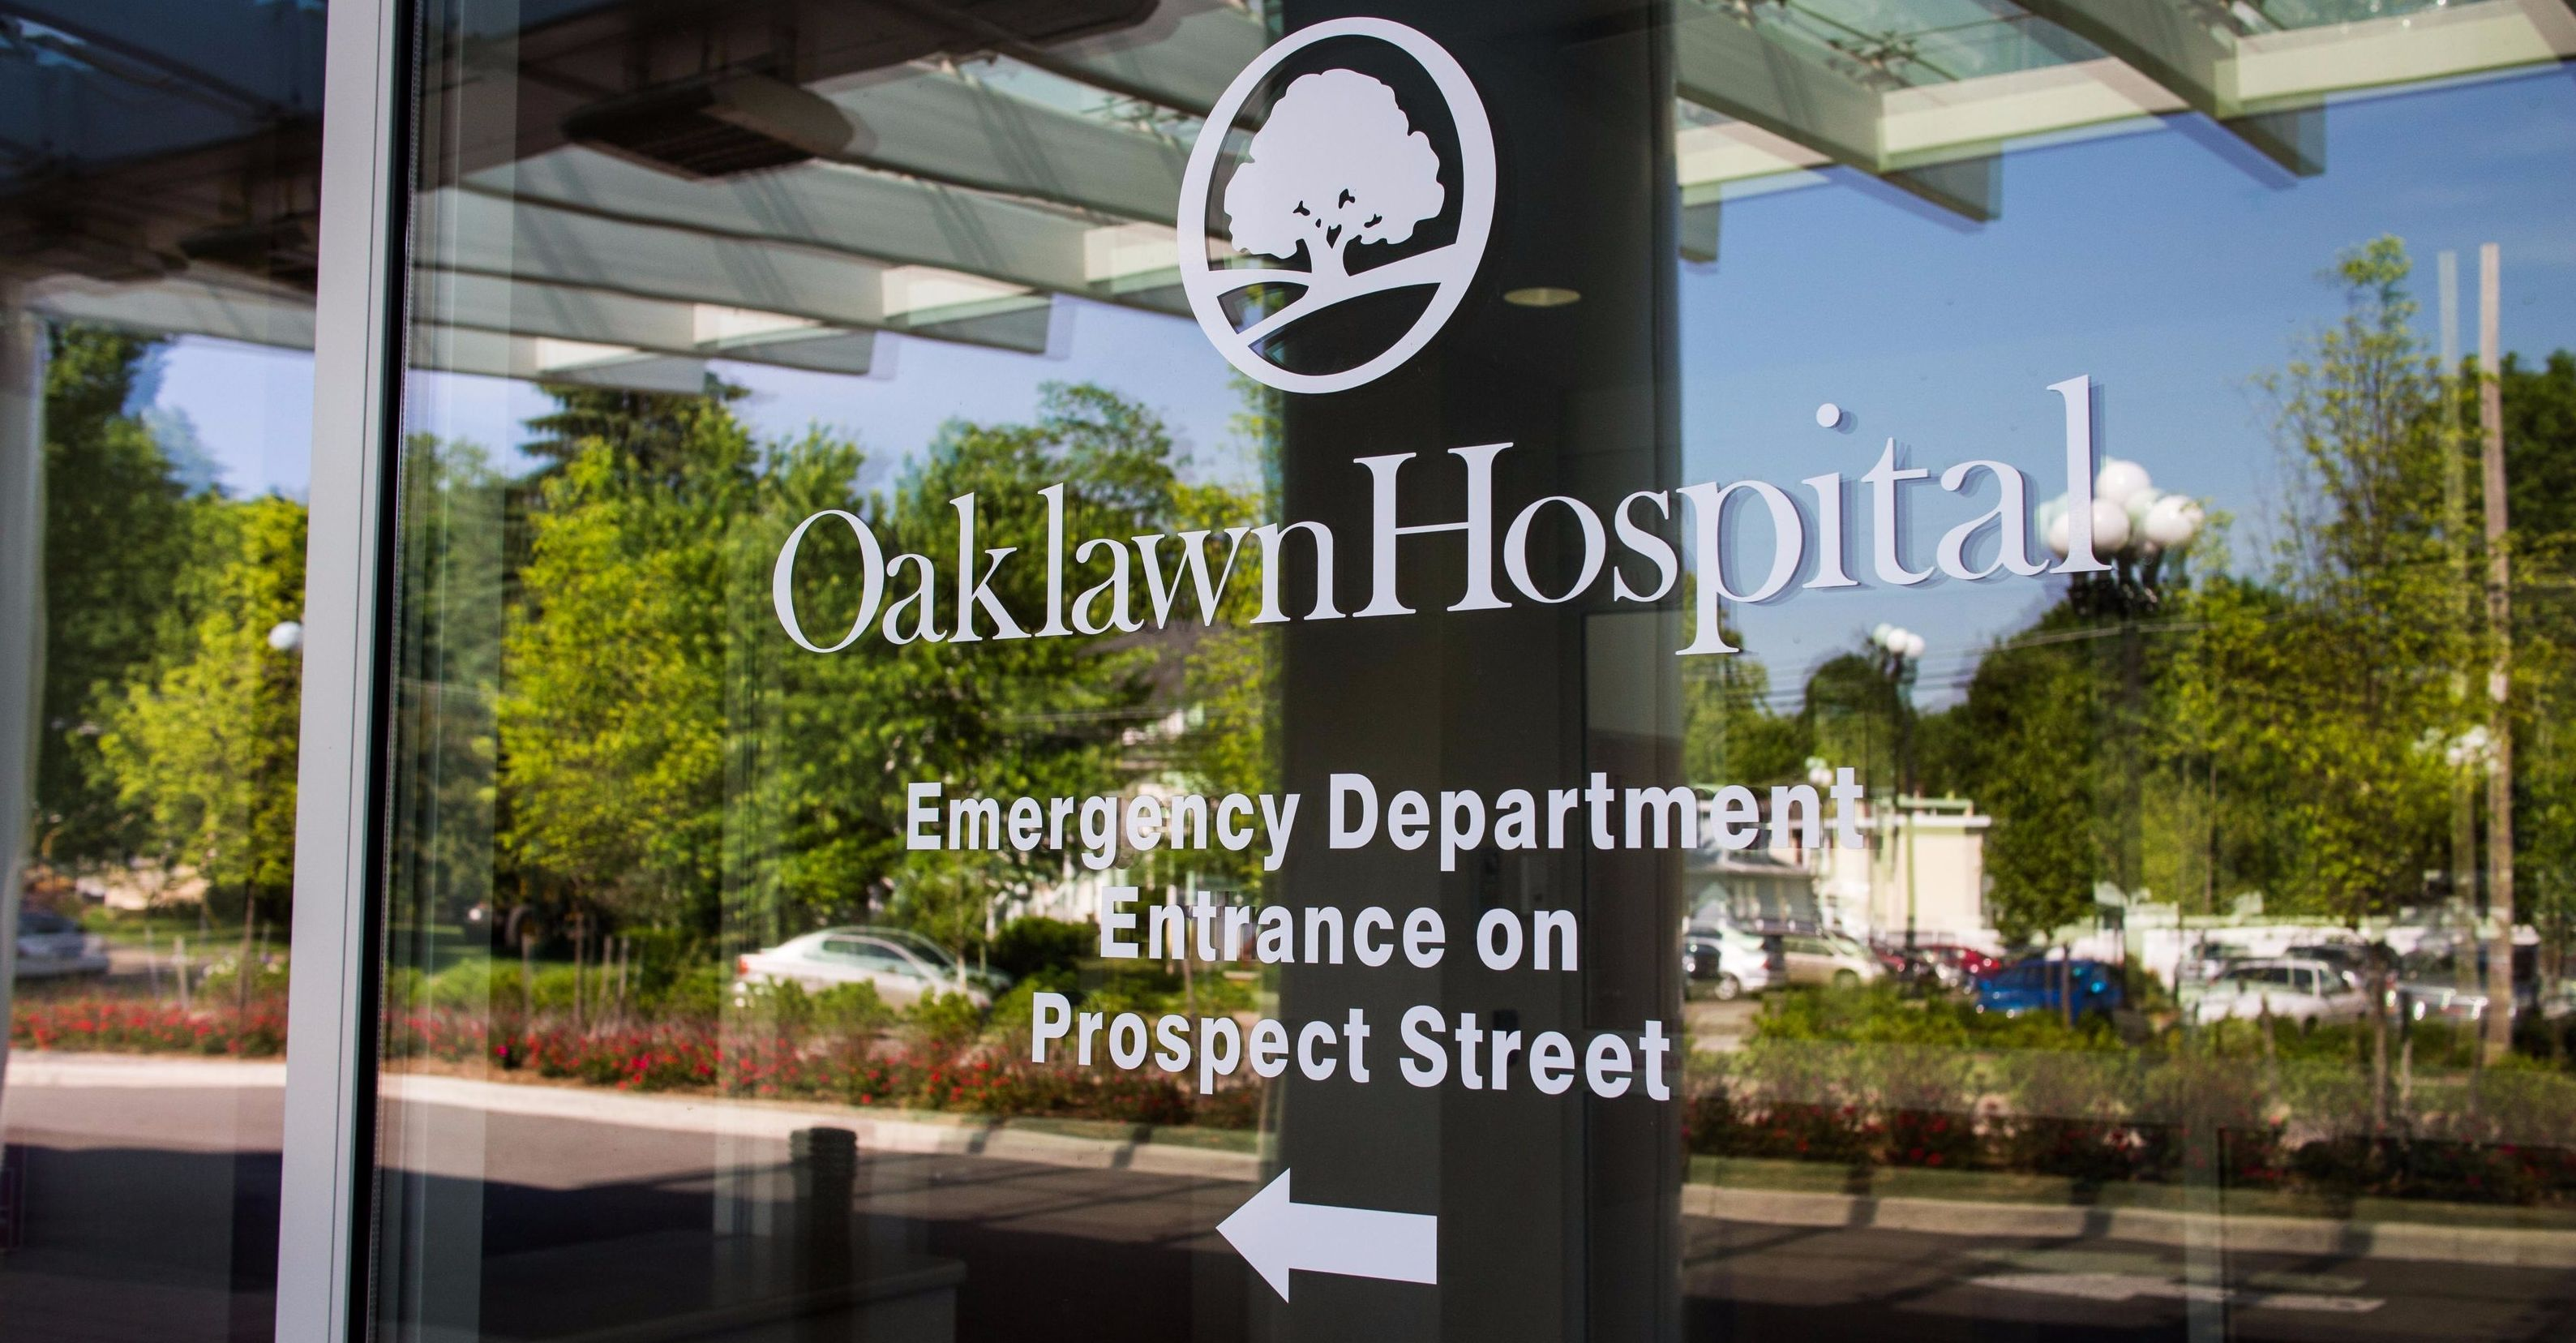 Oaklawn Hospital Investor Relations - photo 2